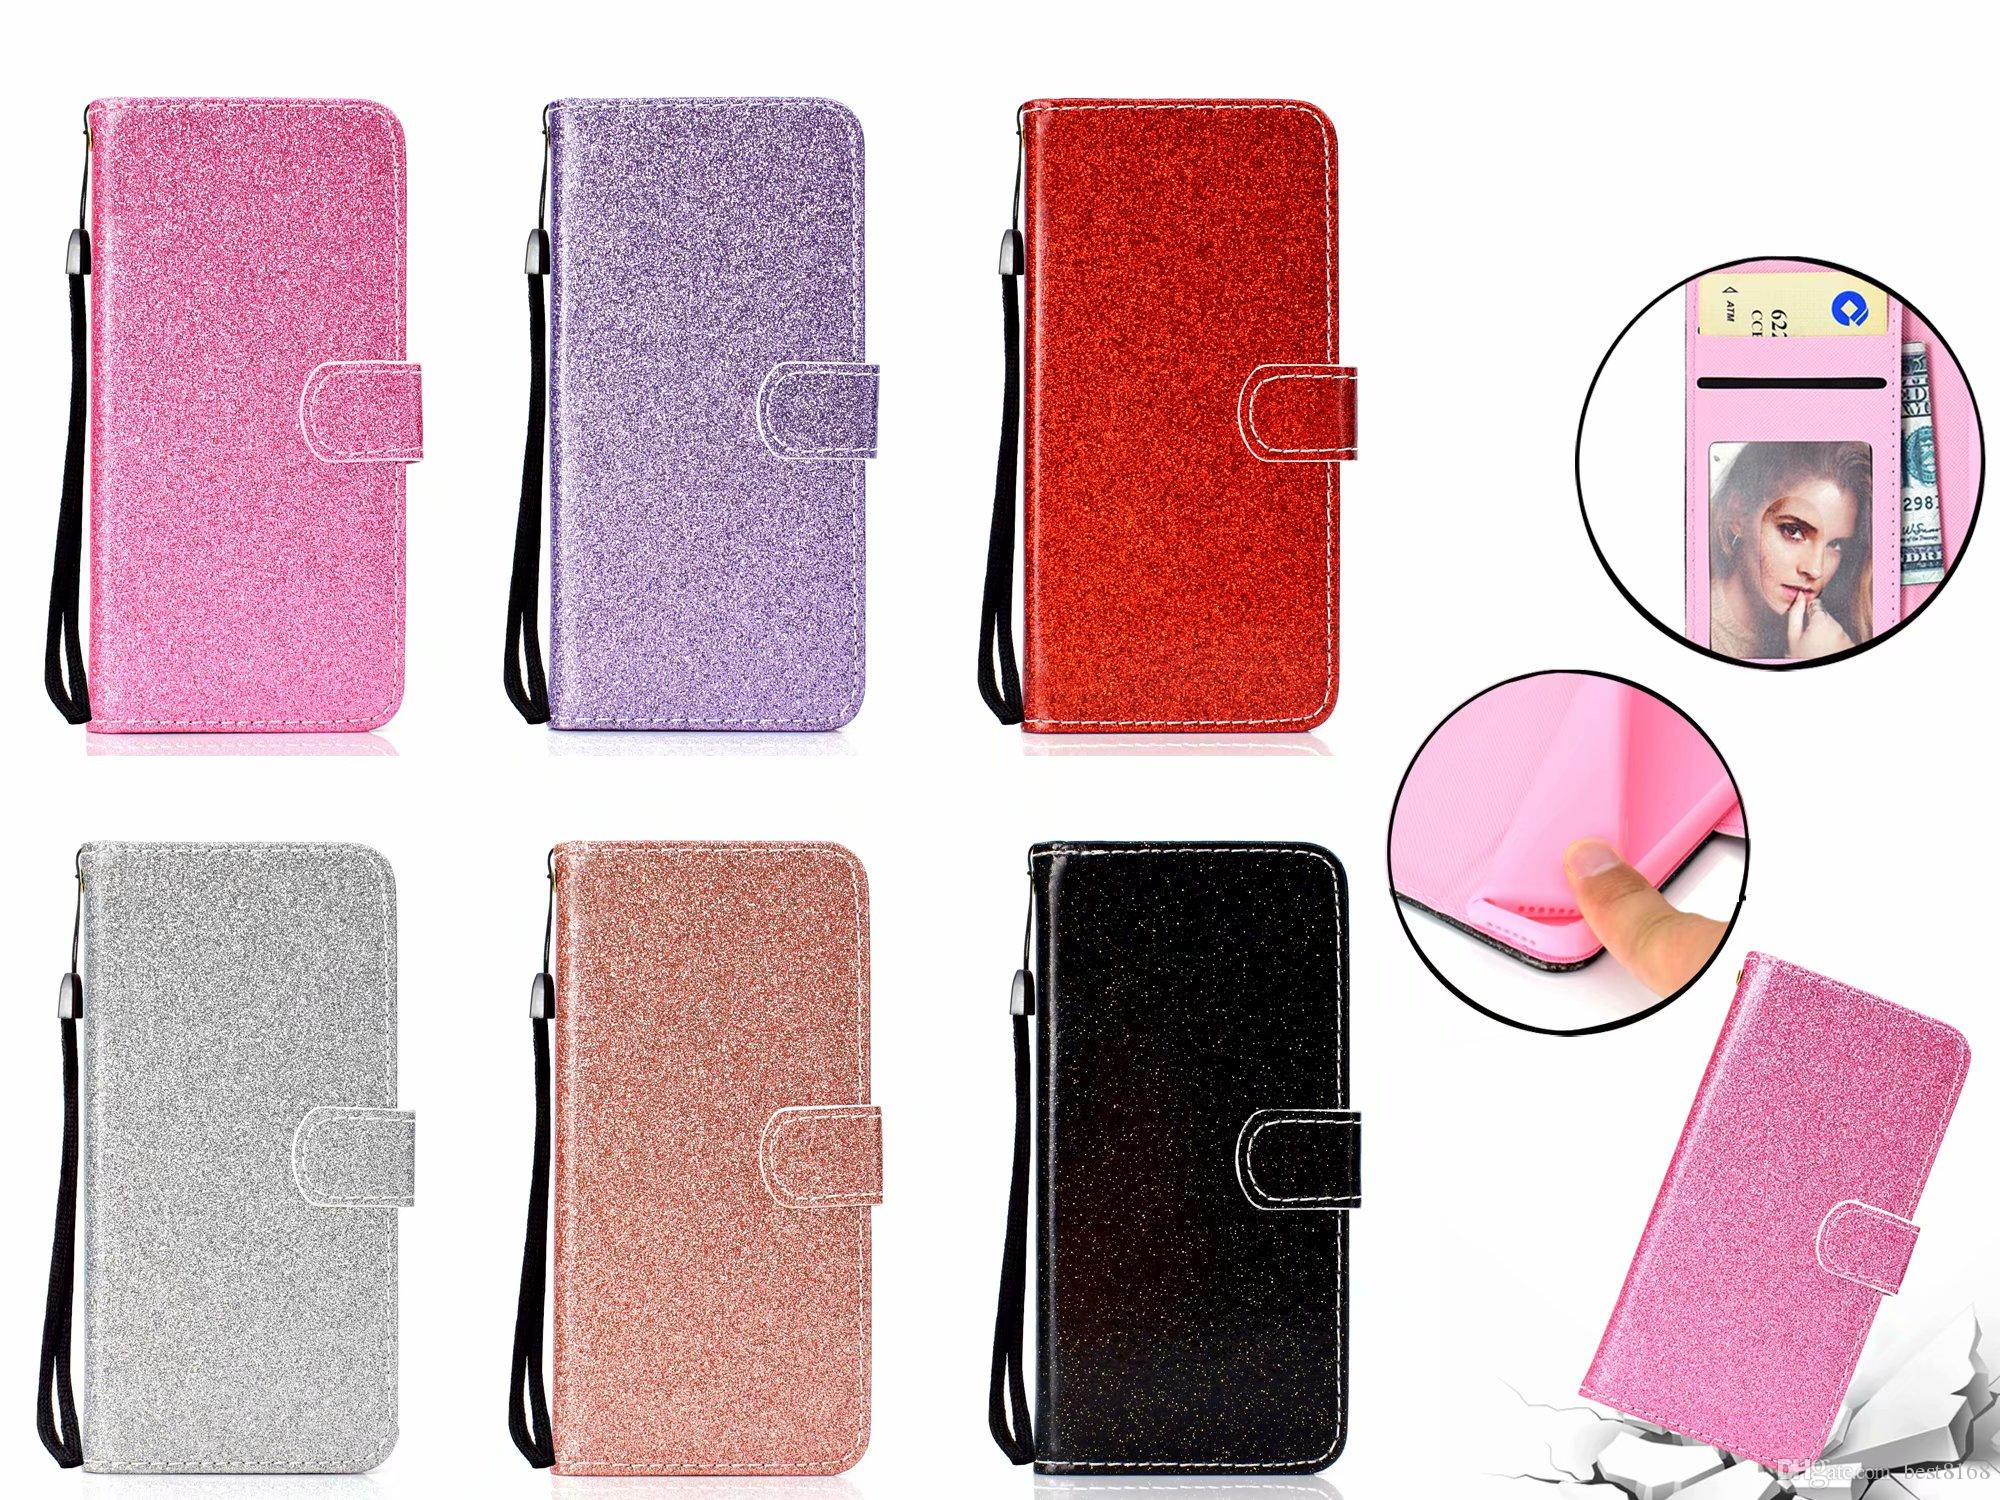 Luxury Glitter Wallet Leather Case For Huawei Mate 20 Lite Pro Honor 8X  Galaxy A7 A750 A9 2018 Sparkly Bling Sparkle Shiny Flip Cover +Strap ed5a6383d800